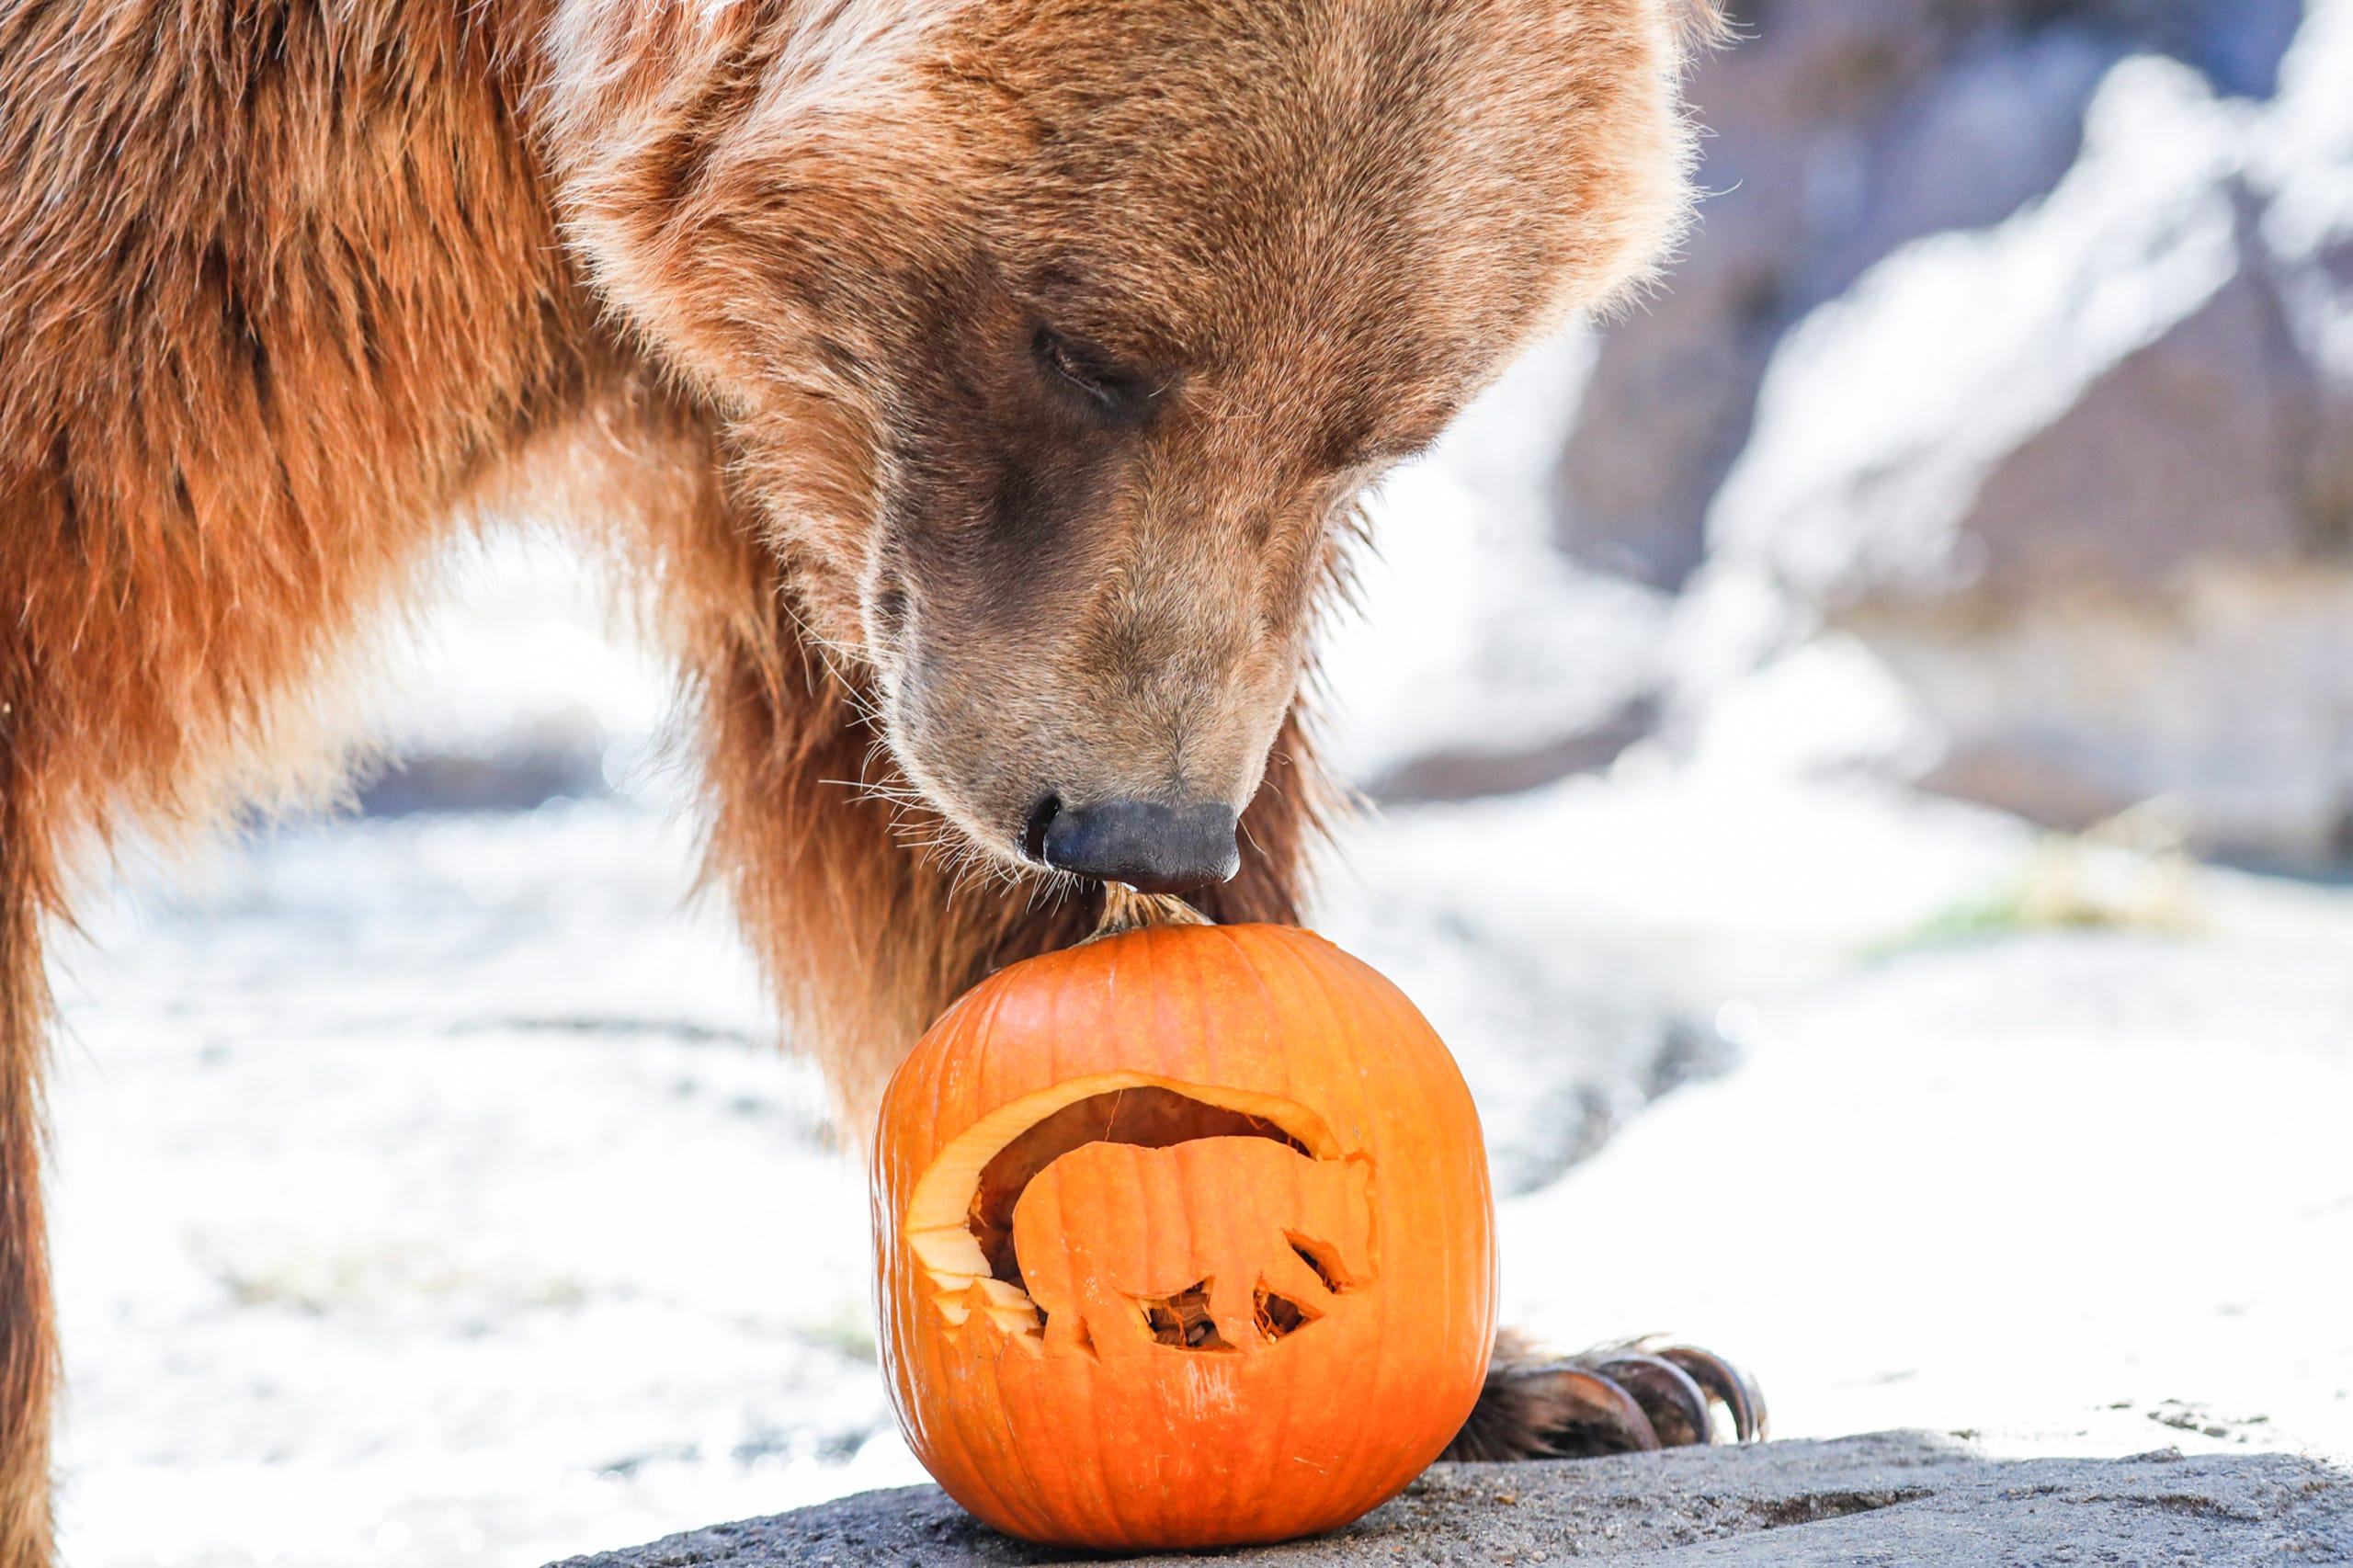 Christmas At The Zoo Indianapolis 2019.Zoo Boo 2019 At The Indianapolis Zoo Proves Unbearably Cute